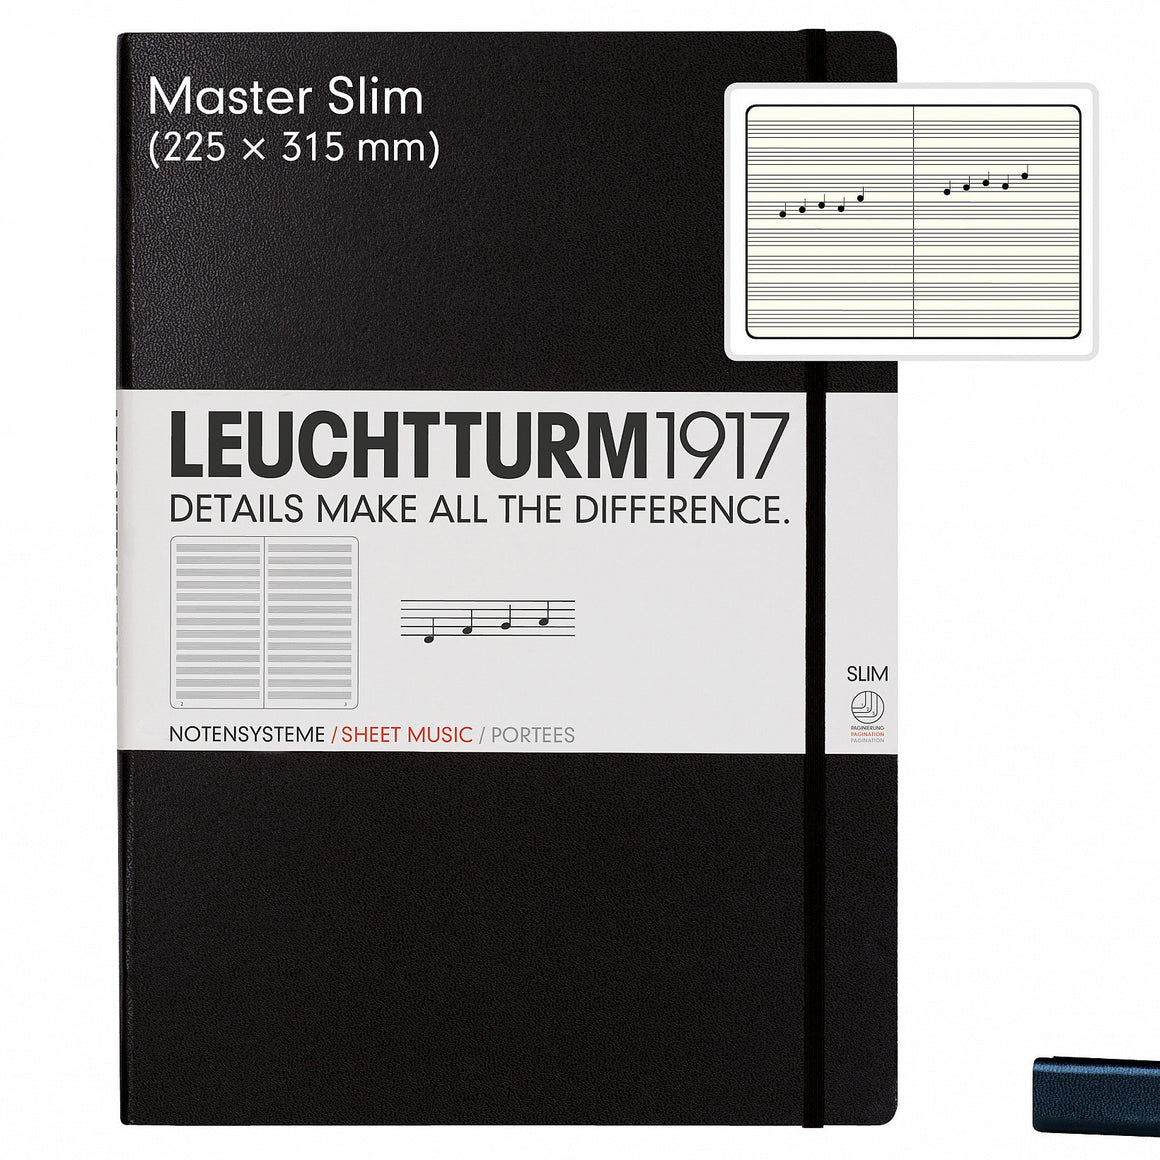 LEUCHTTURM1917 A4+ Master Slim Sheet Music Notebook Cover